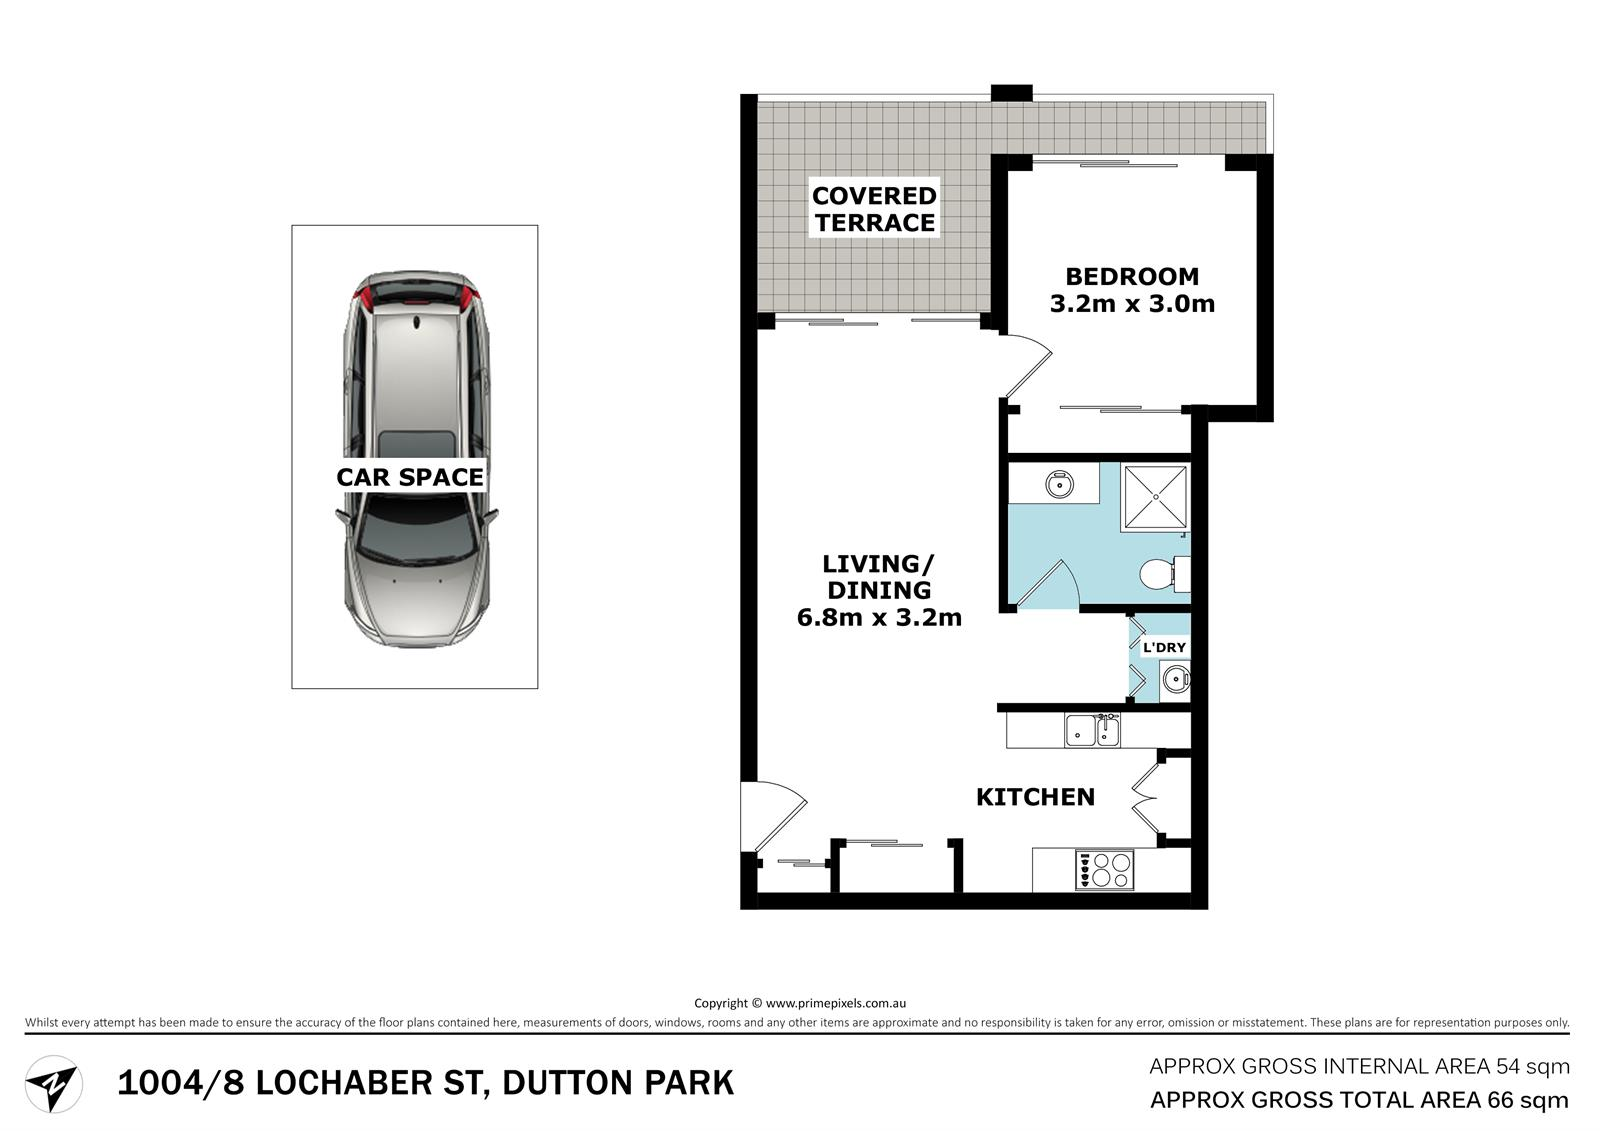 1004 / 8 Lochaber St DUTTON PARK QLD 4102 Floorplan 1